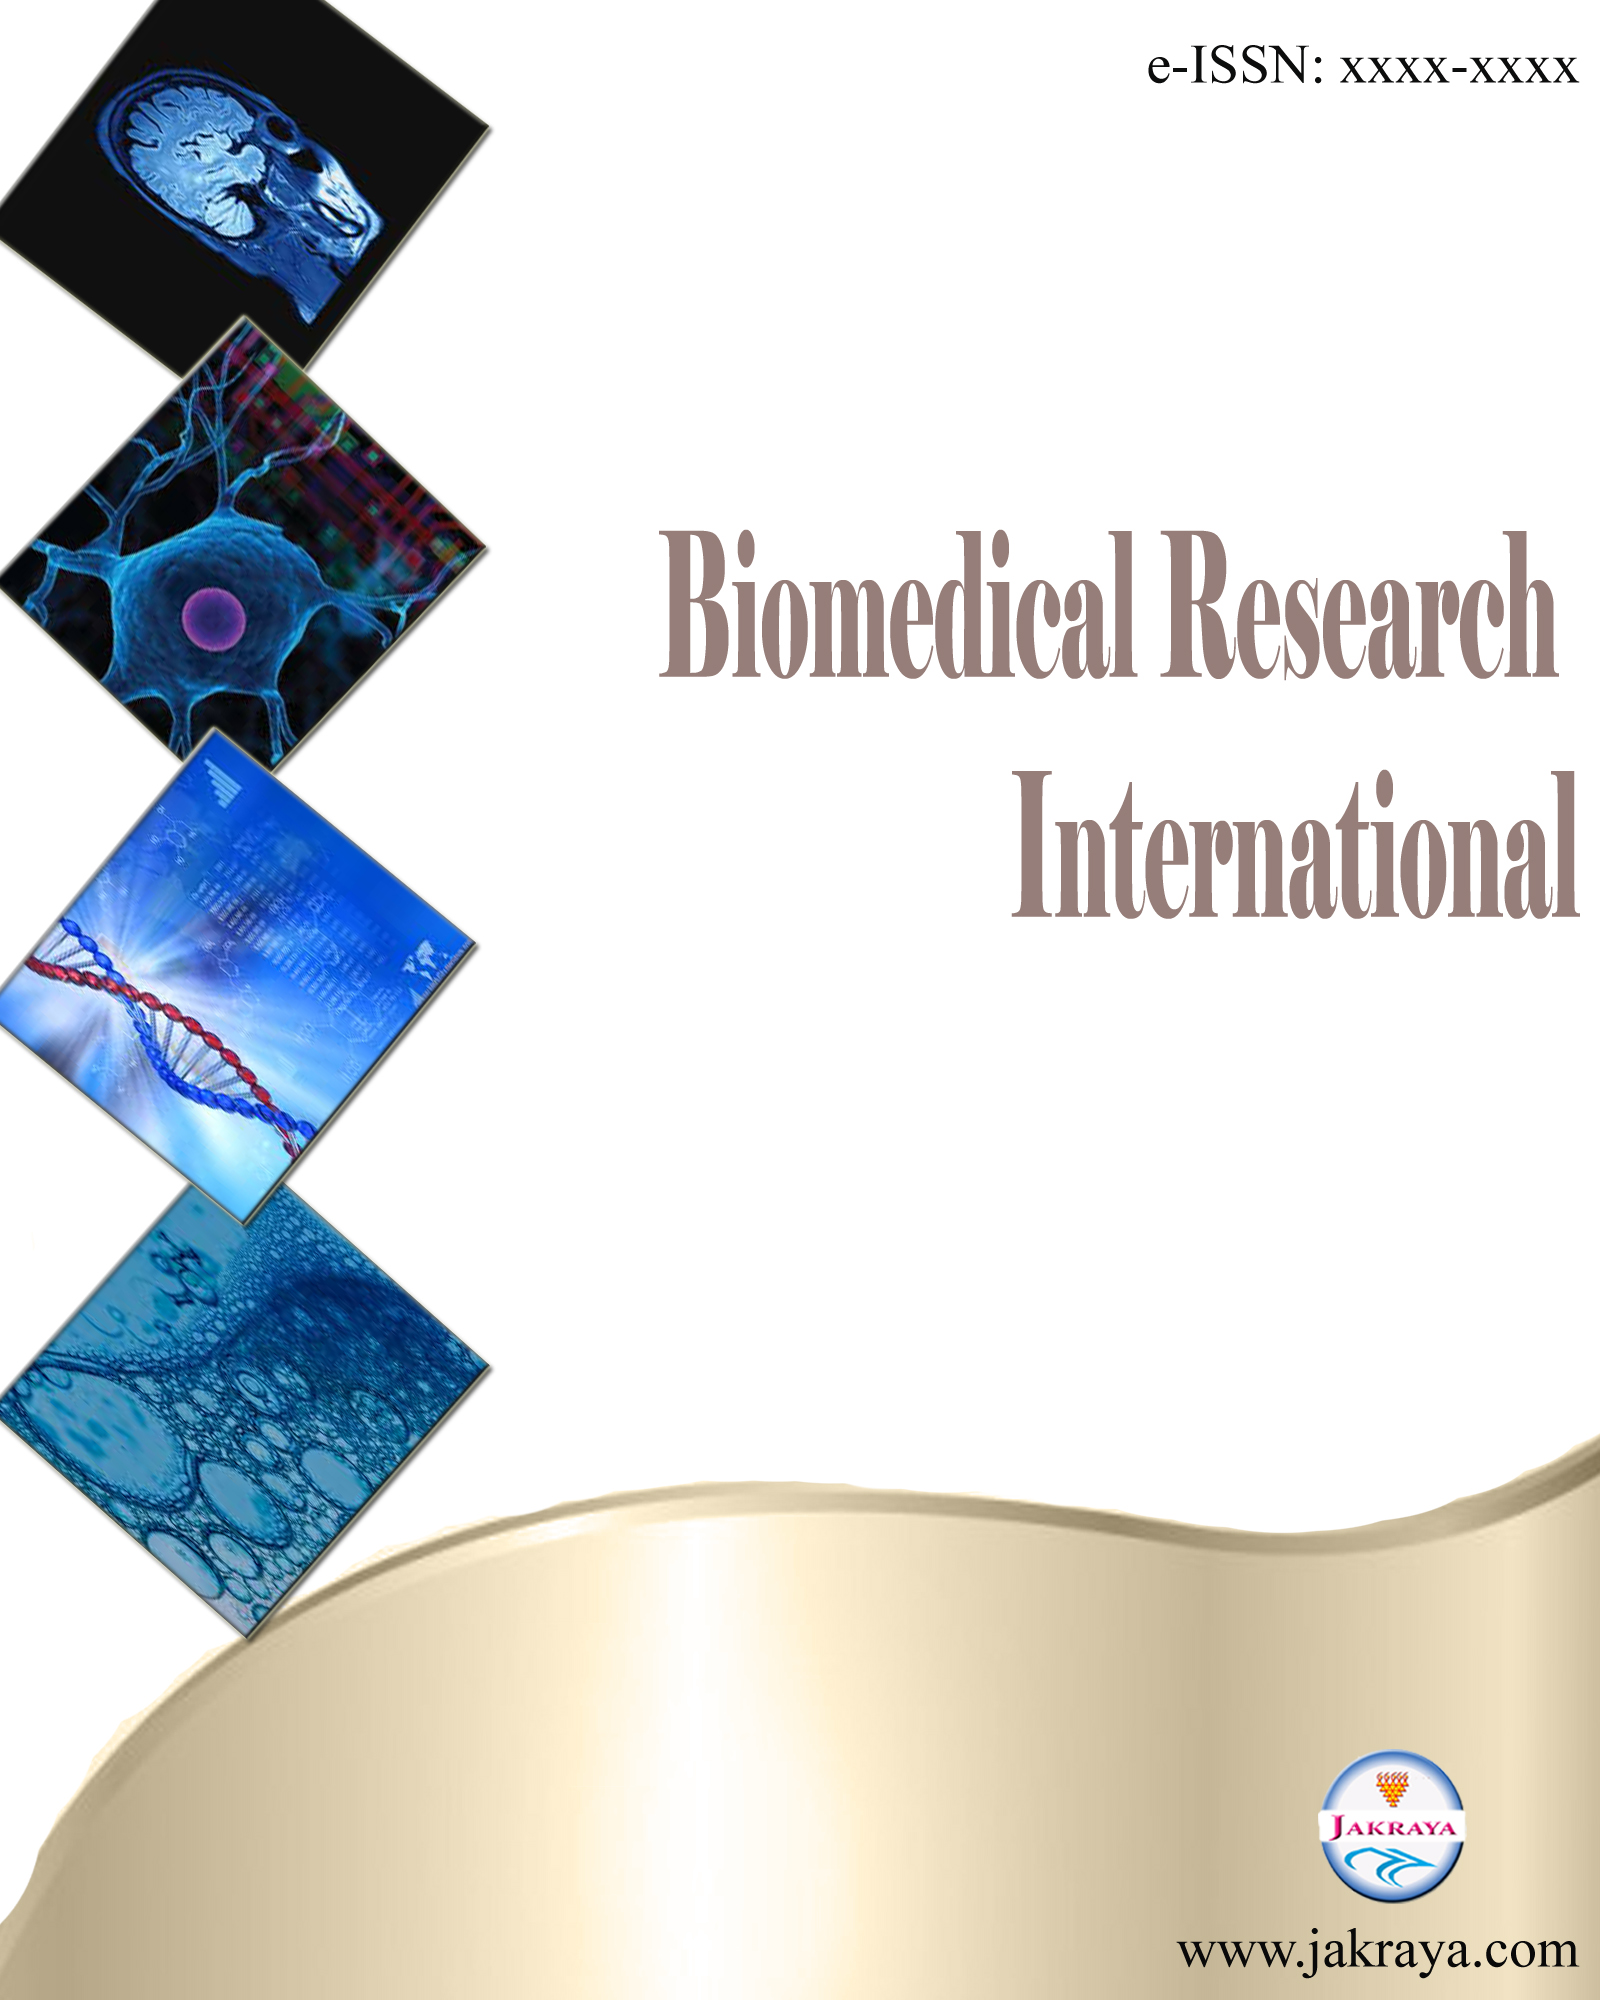 Biomedical & Research International